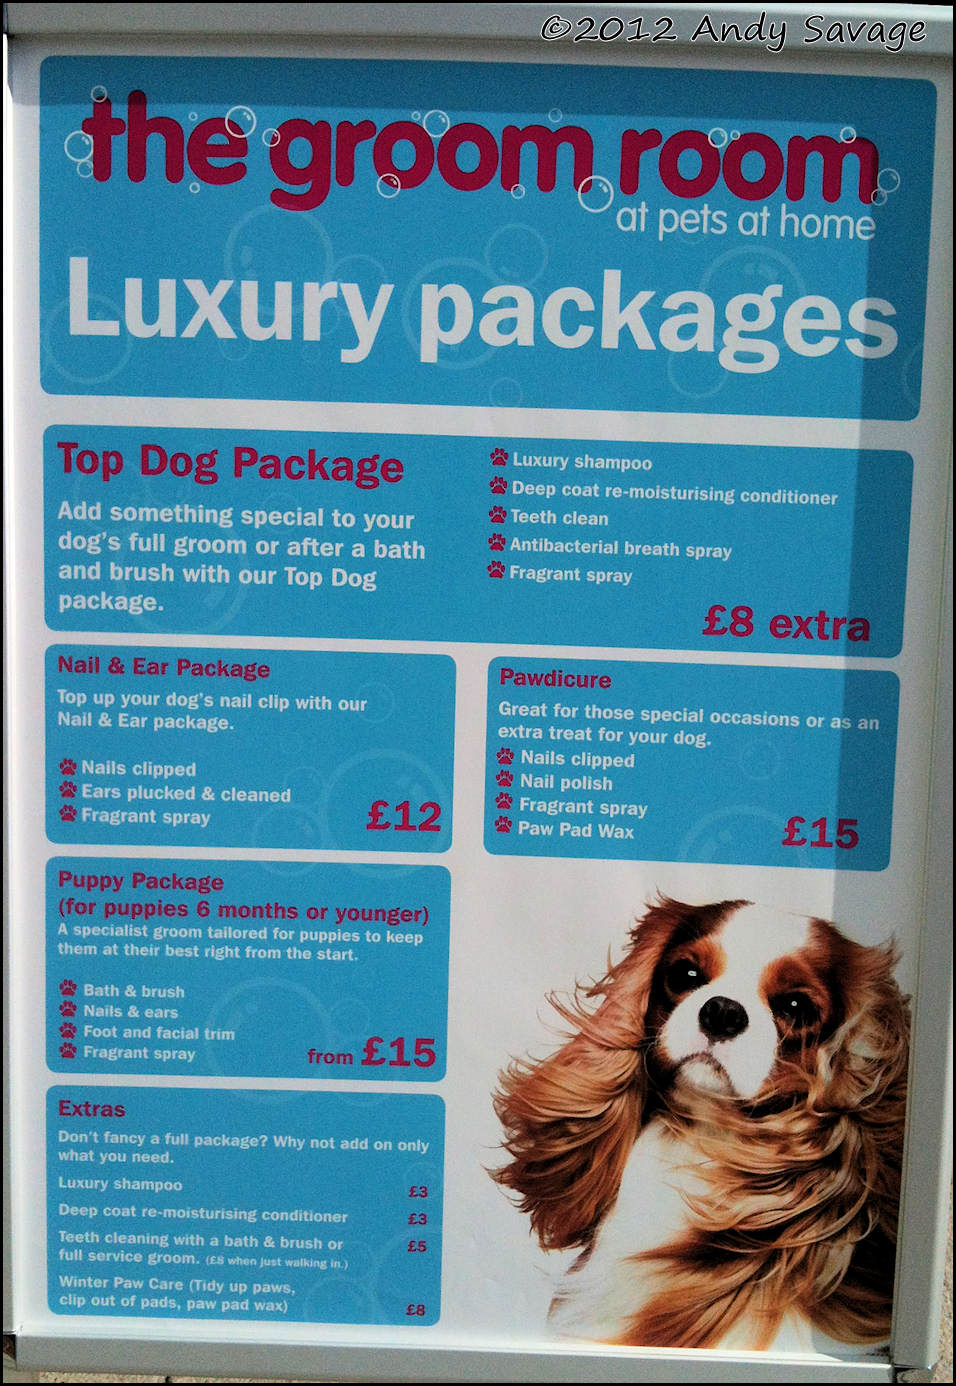 www.derbyphotos.co.uk - The blog by Andy Savage: Pets at Home ...